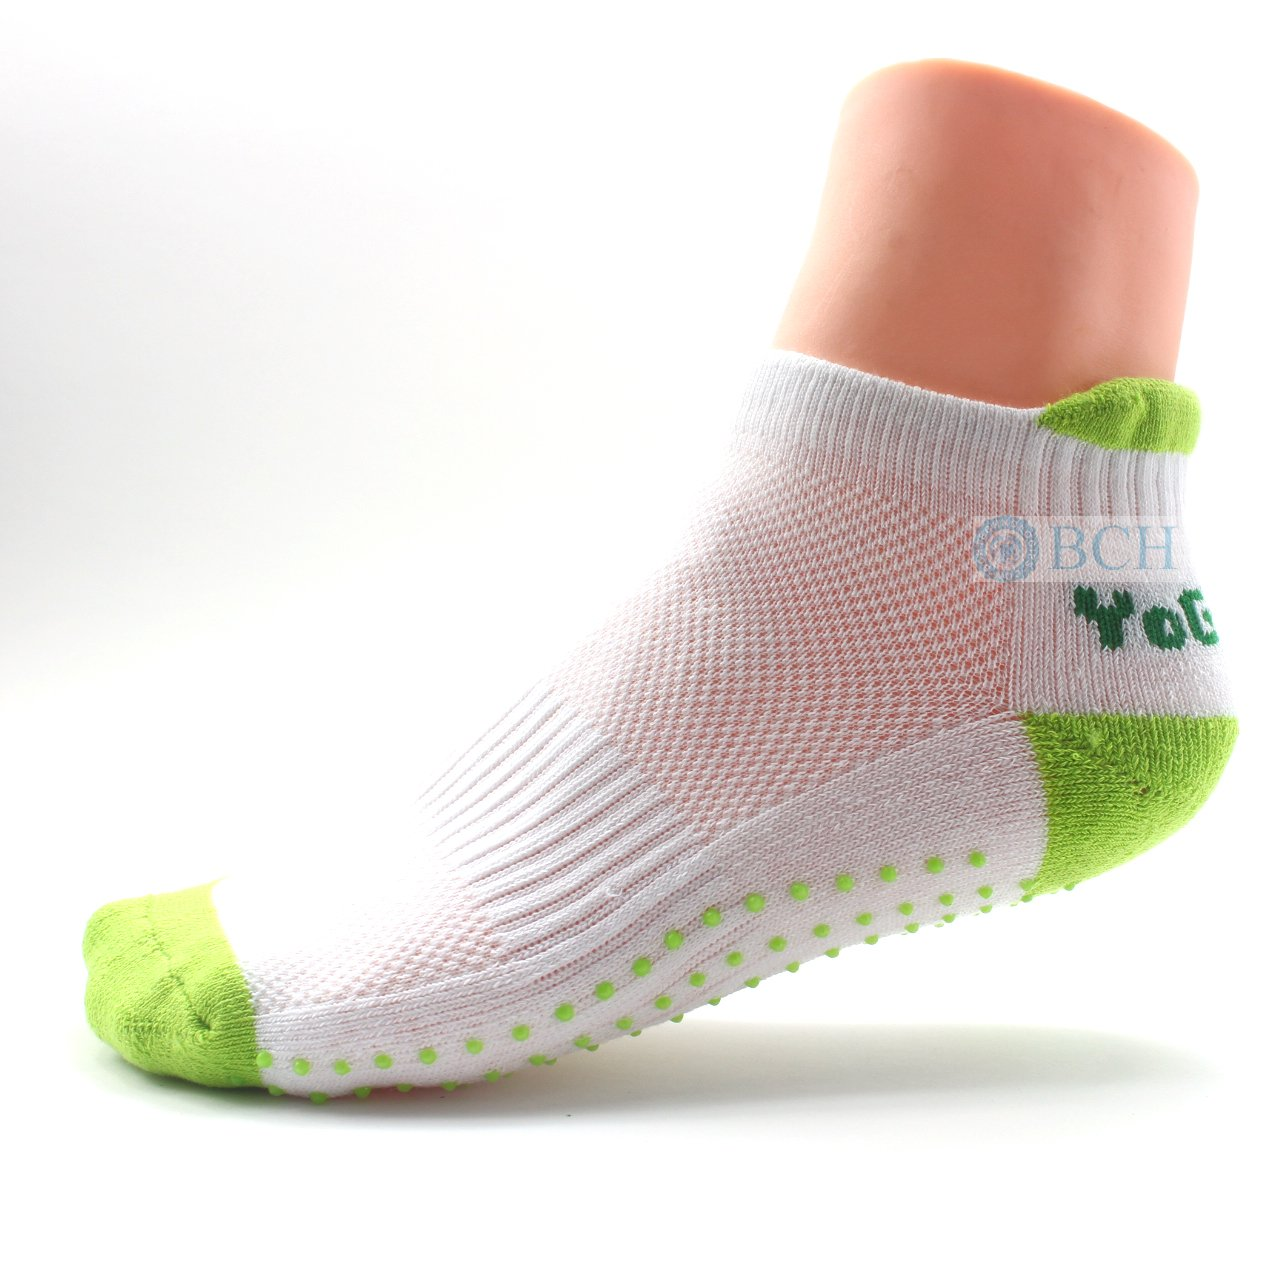 BCH® Premium Non-Slip Excercise Socks for Yoga, Palates, Barre, Ballet Barre (Green) BCH Technologies